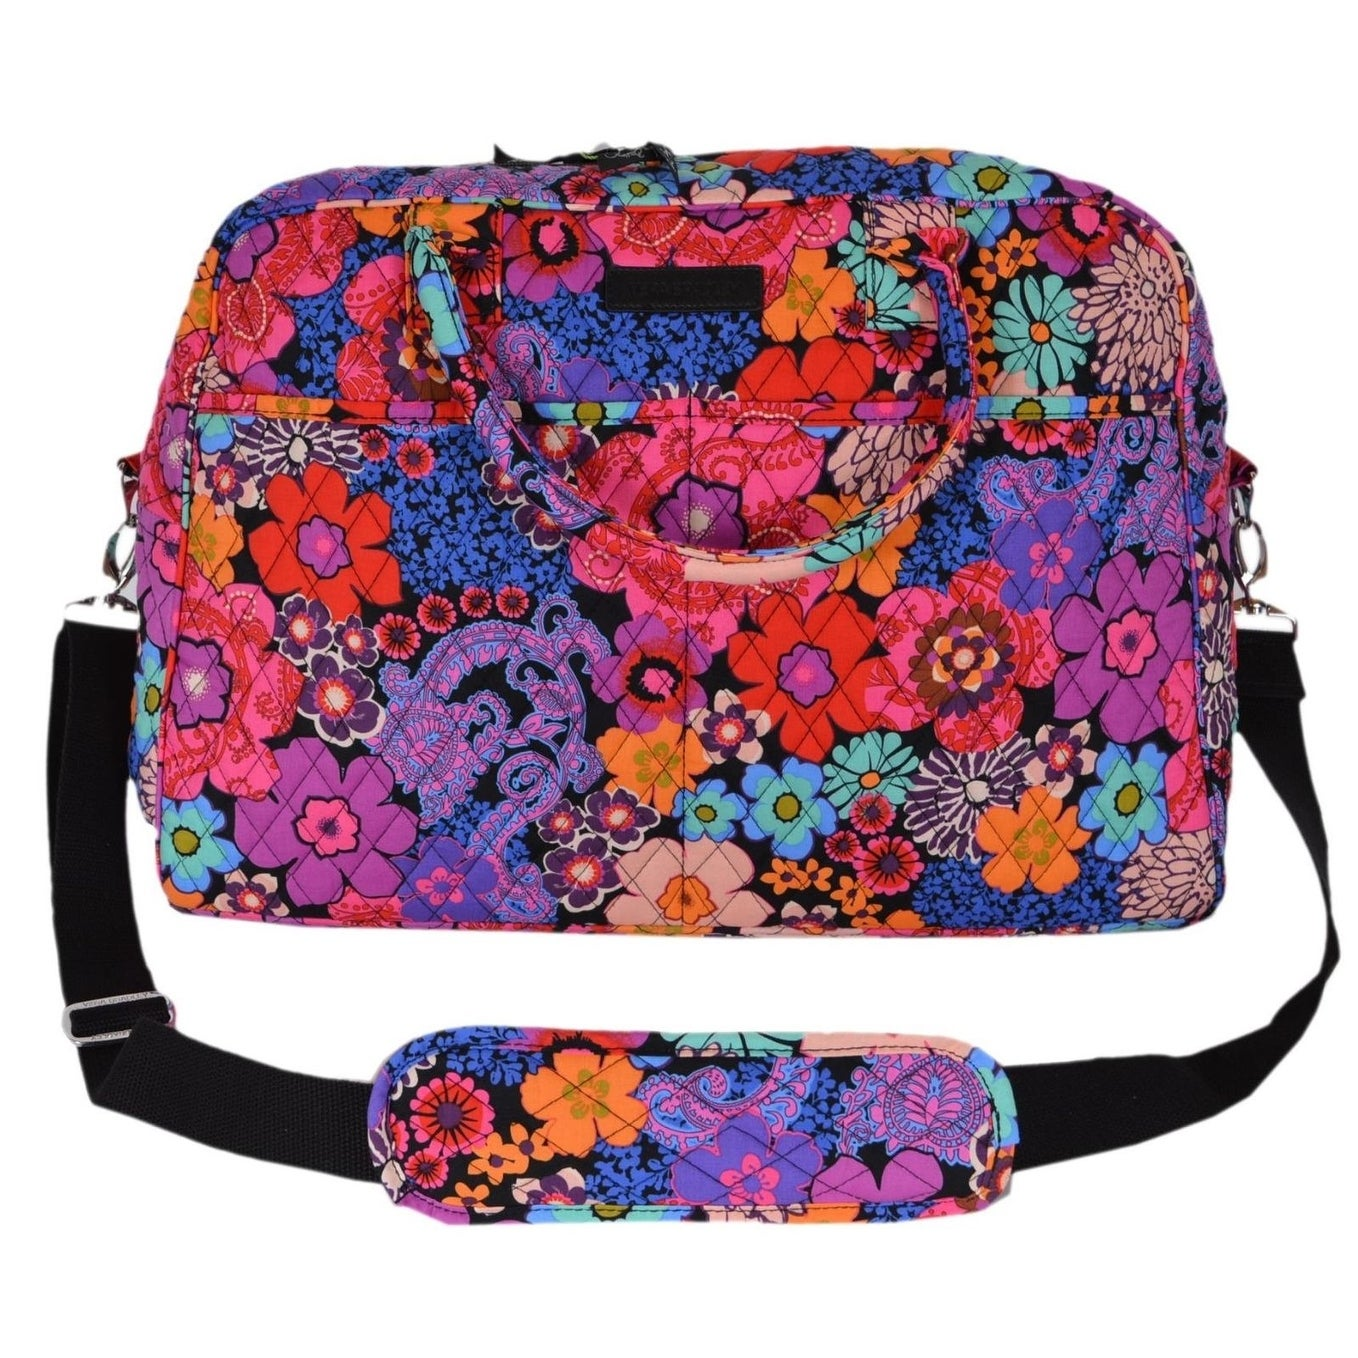 Shop Vera Bradley FLORAL FIESTA Cotton Weekender Duffle Travel Bag - Free  Shipping Today - Overstock - 21219278 bcc5244fc7271